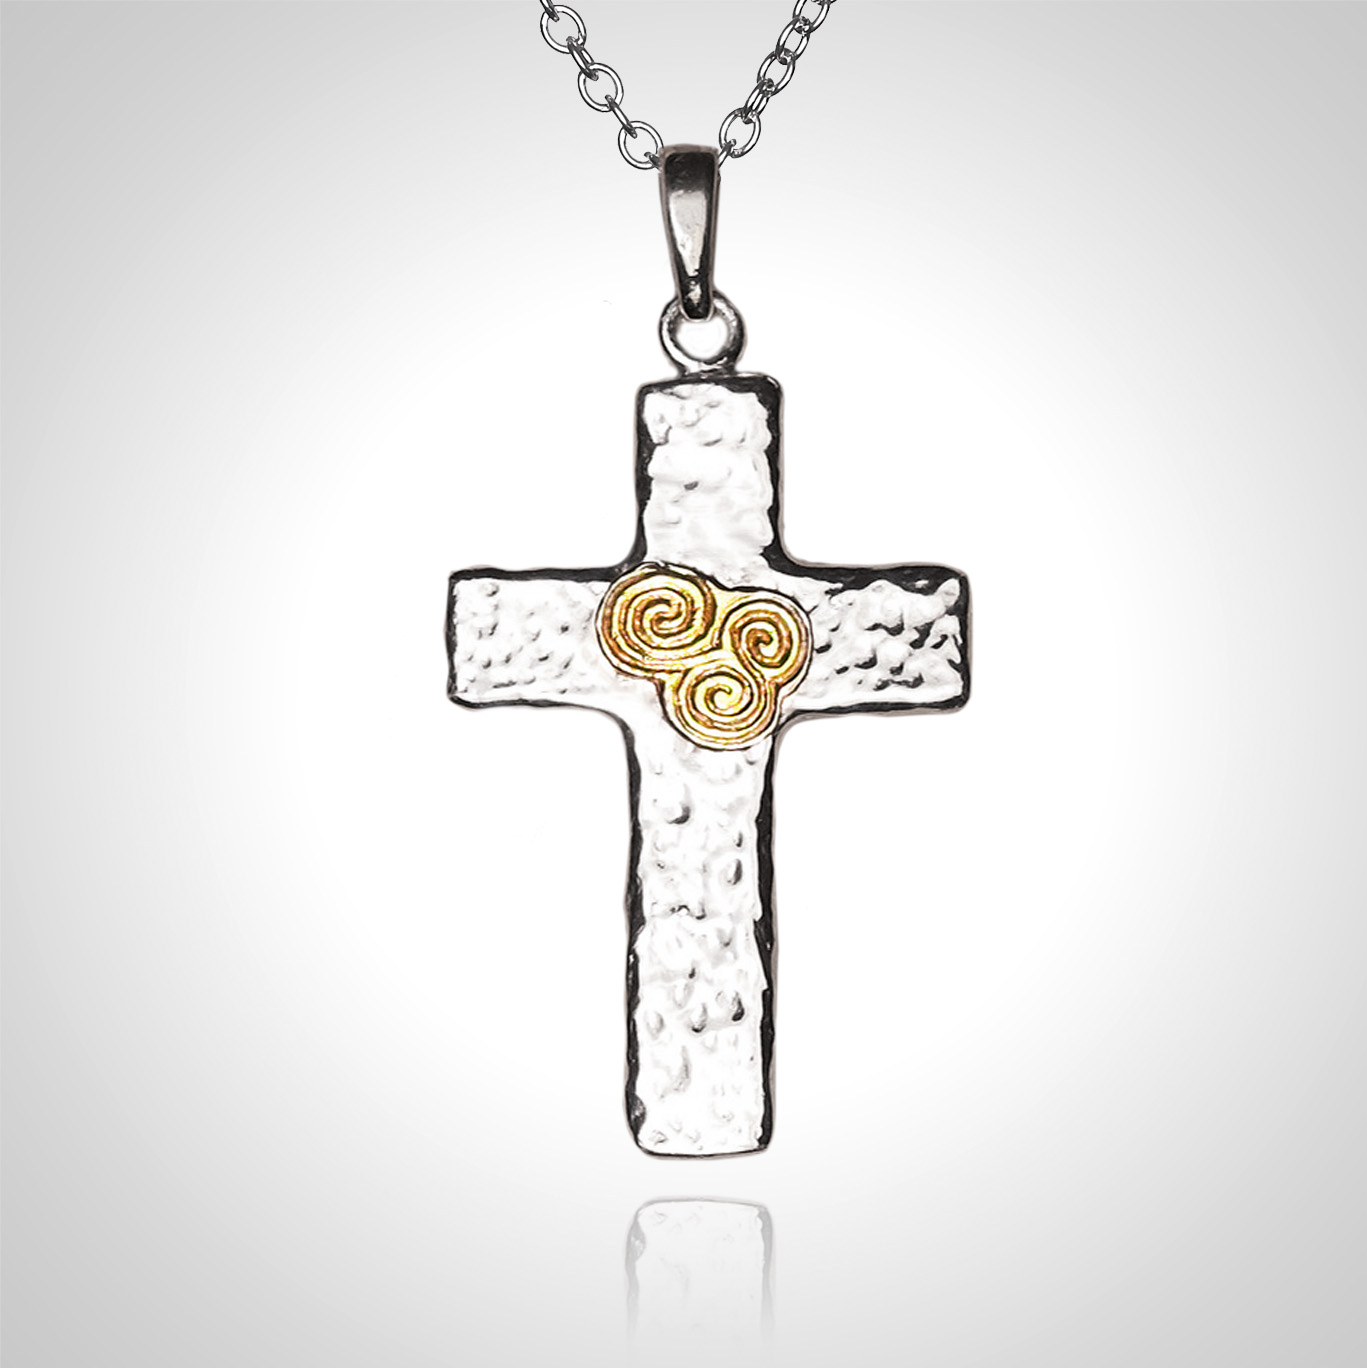 Silver with Gold Cross